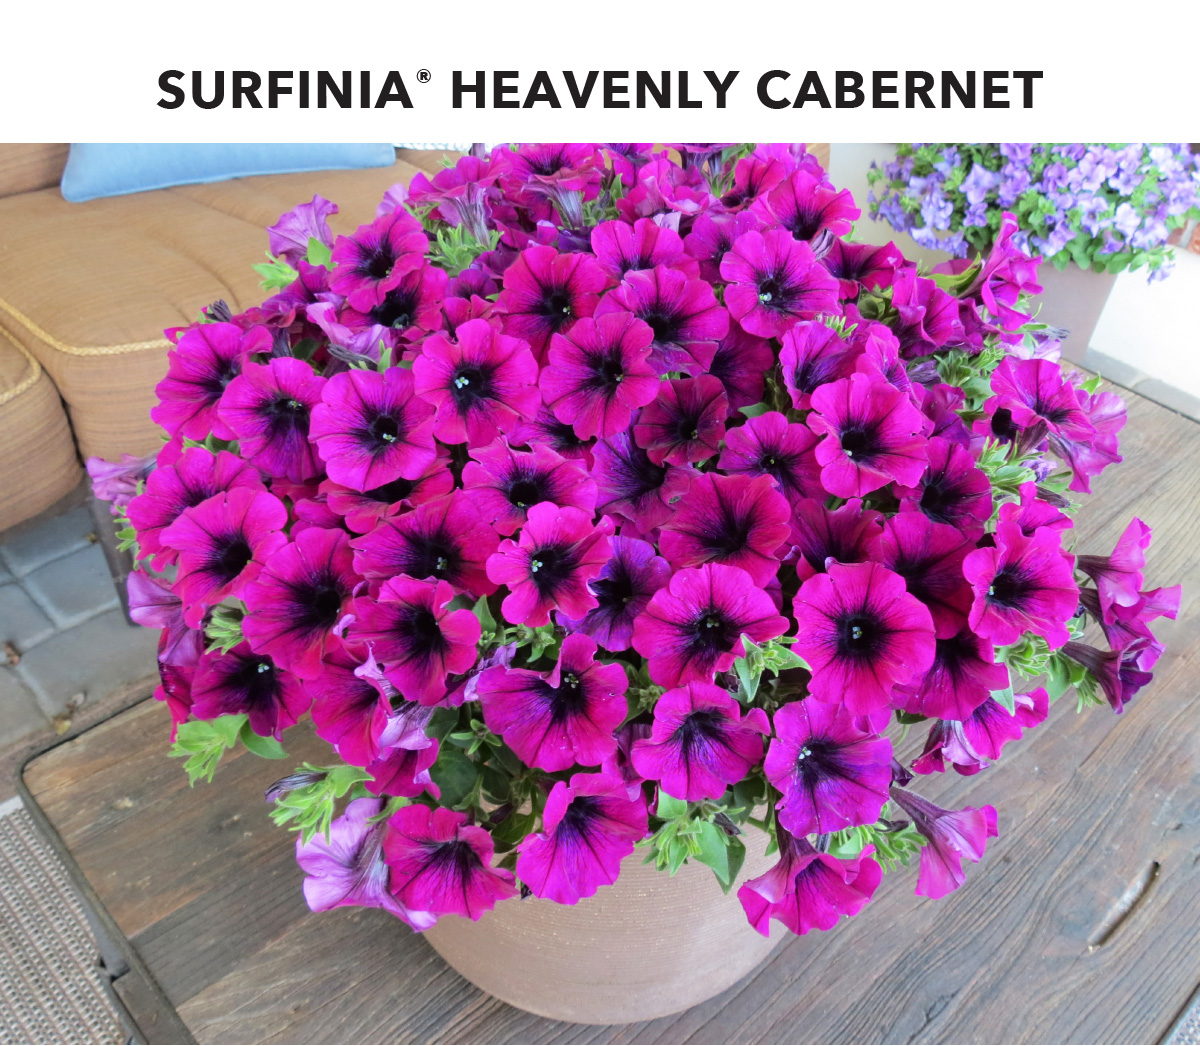 Surfinia Heavenly Cabernet blooms